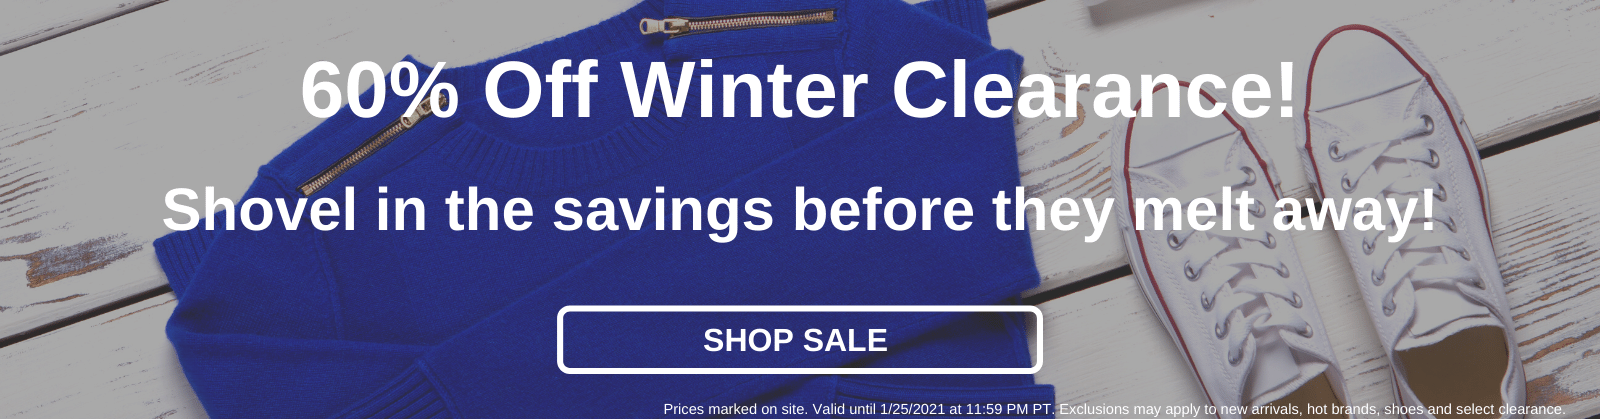 60% Off Winter Clearance! Shovel in the savings before they melt away! [Shop Sale]